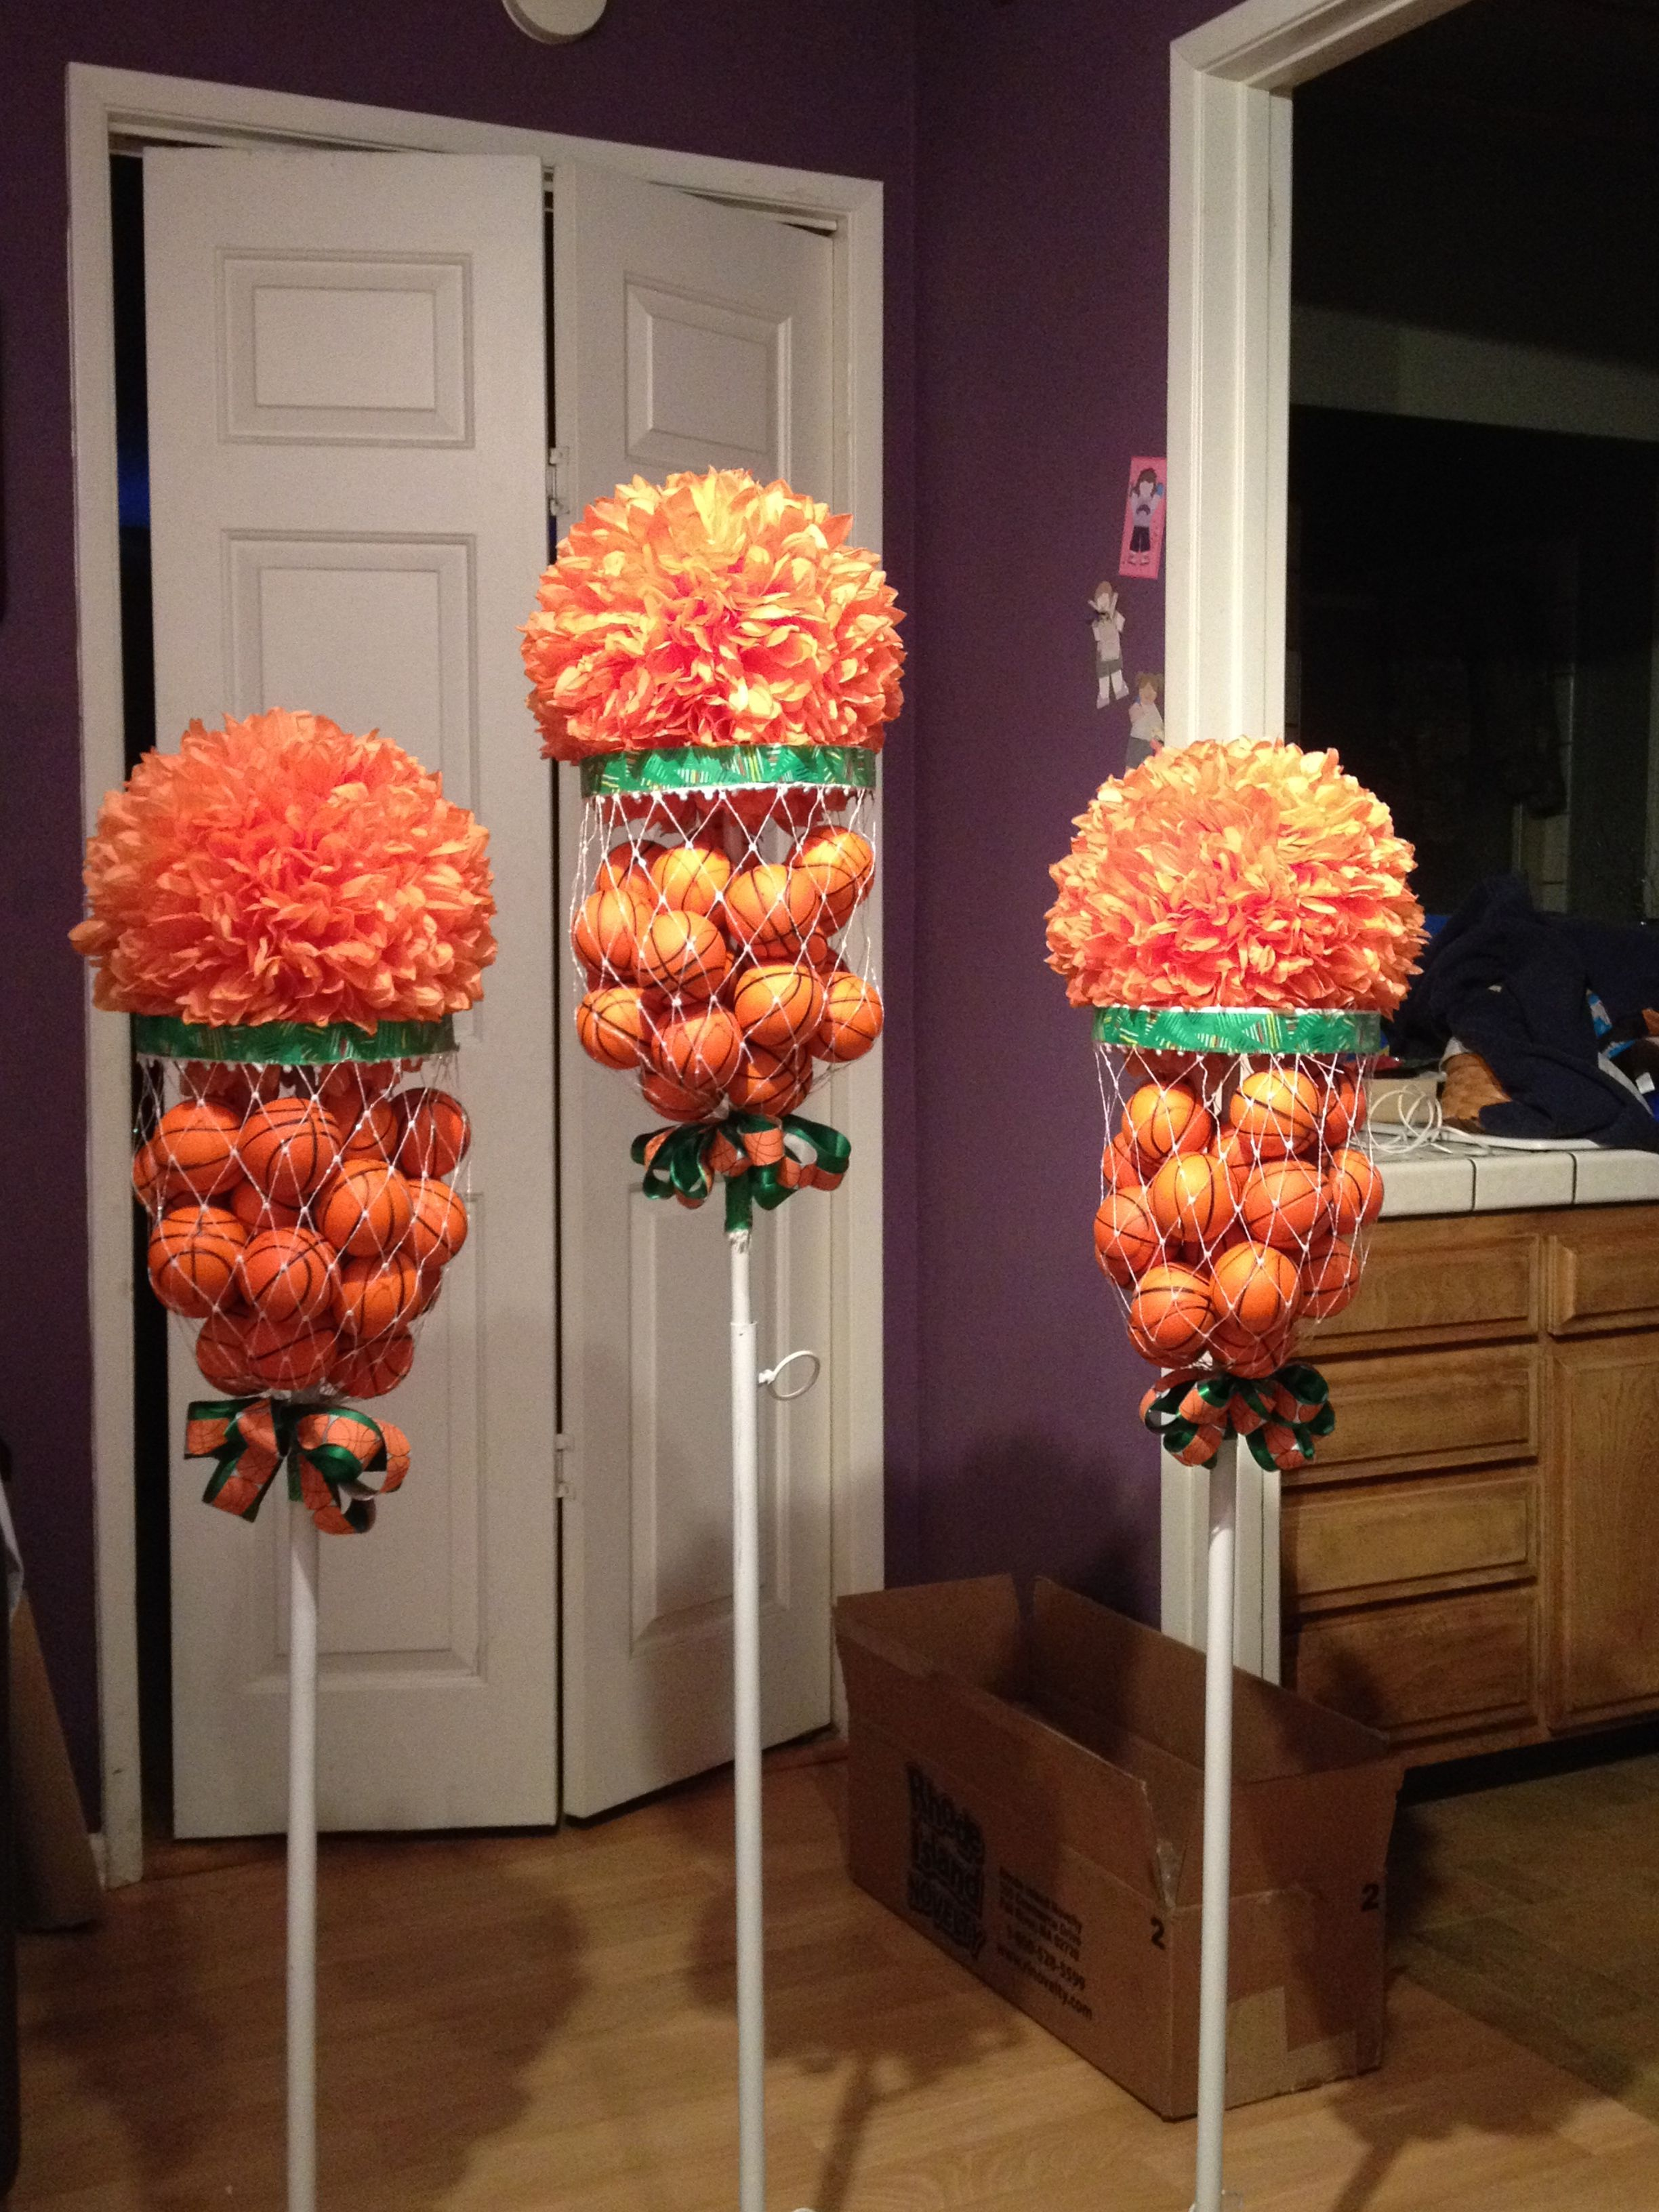 Table Bar Rangements Basketball Flower Arrangements Basketball Bar Mitzvah